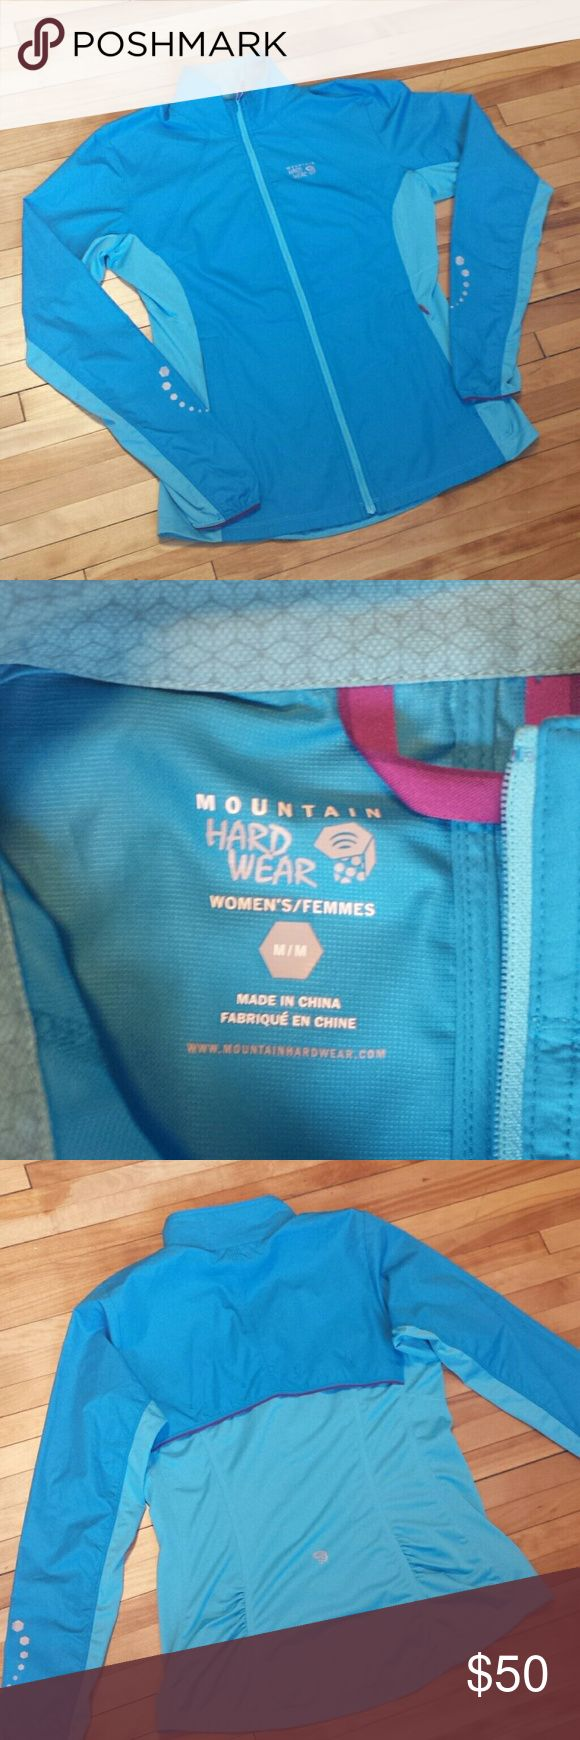 Mountain Hard Wear running jacket Purchased at local outfitter for $80 and only worn once. There is a stain on left cuff but not very noticeable when wearing and priced accordingly. Selling because I have many jackets! Hope someone can enjoy! Can be used for running, hiking, cross country skiing, etc. Mountain Hard Wear Jackets & Coats Utility Jackets